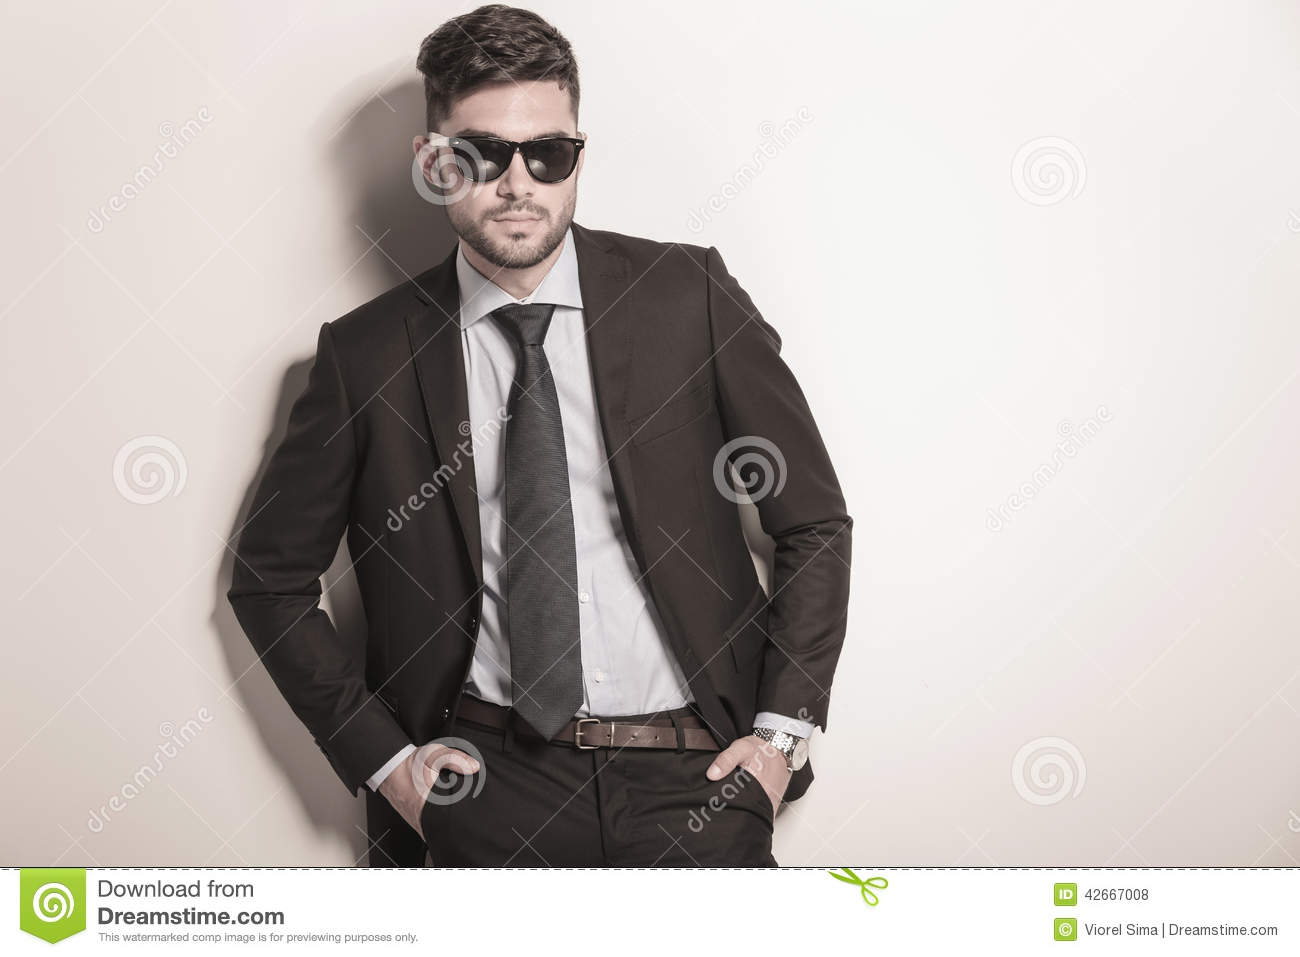 Serious and cool business man wearing sunglasses